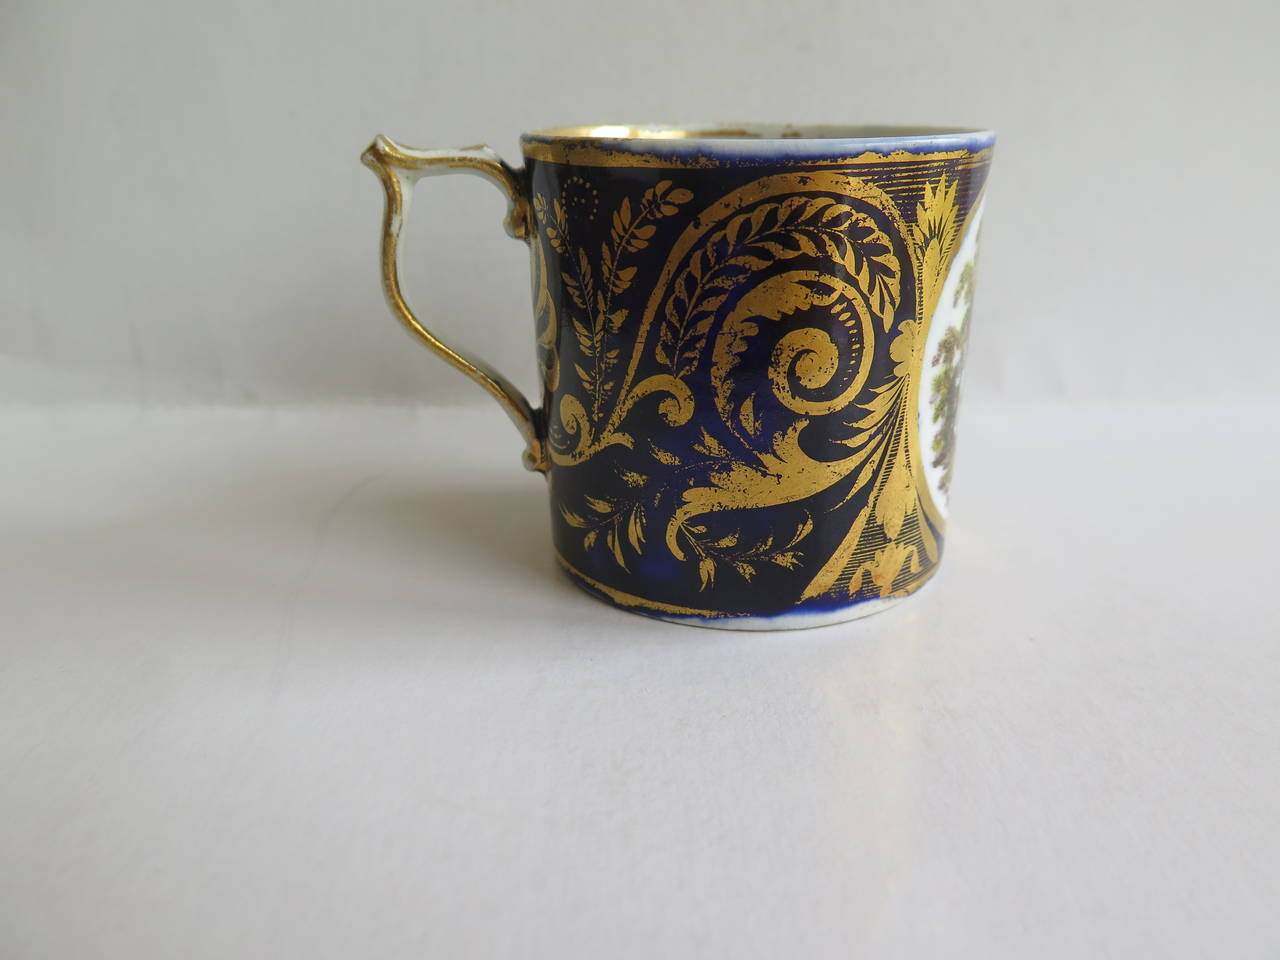 This is a highly collectable porcelain Coffee Can or cup with a hand painted scene called